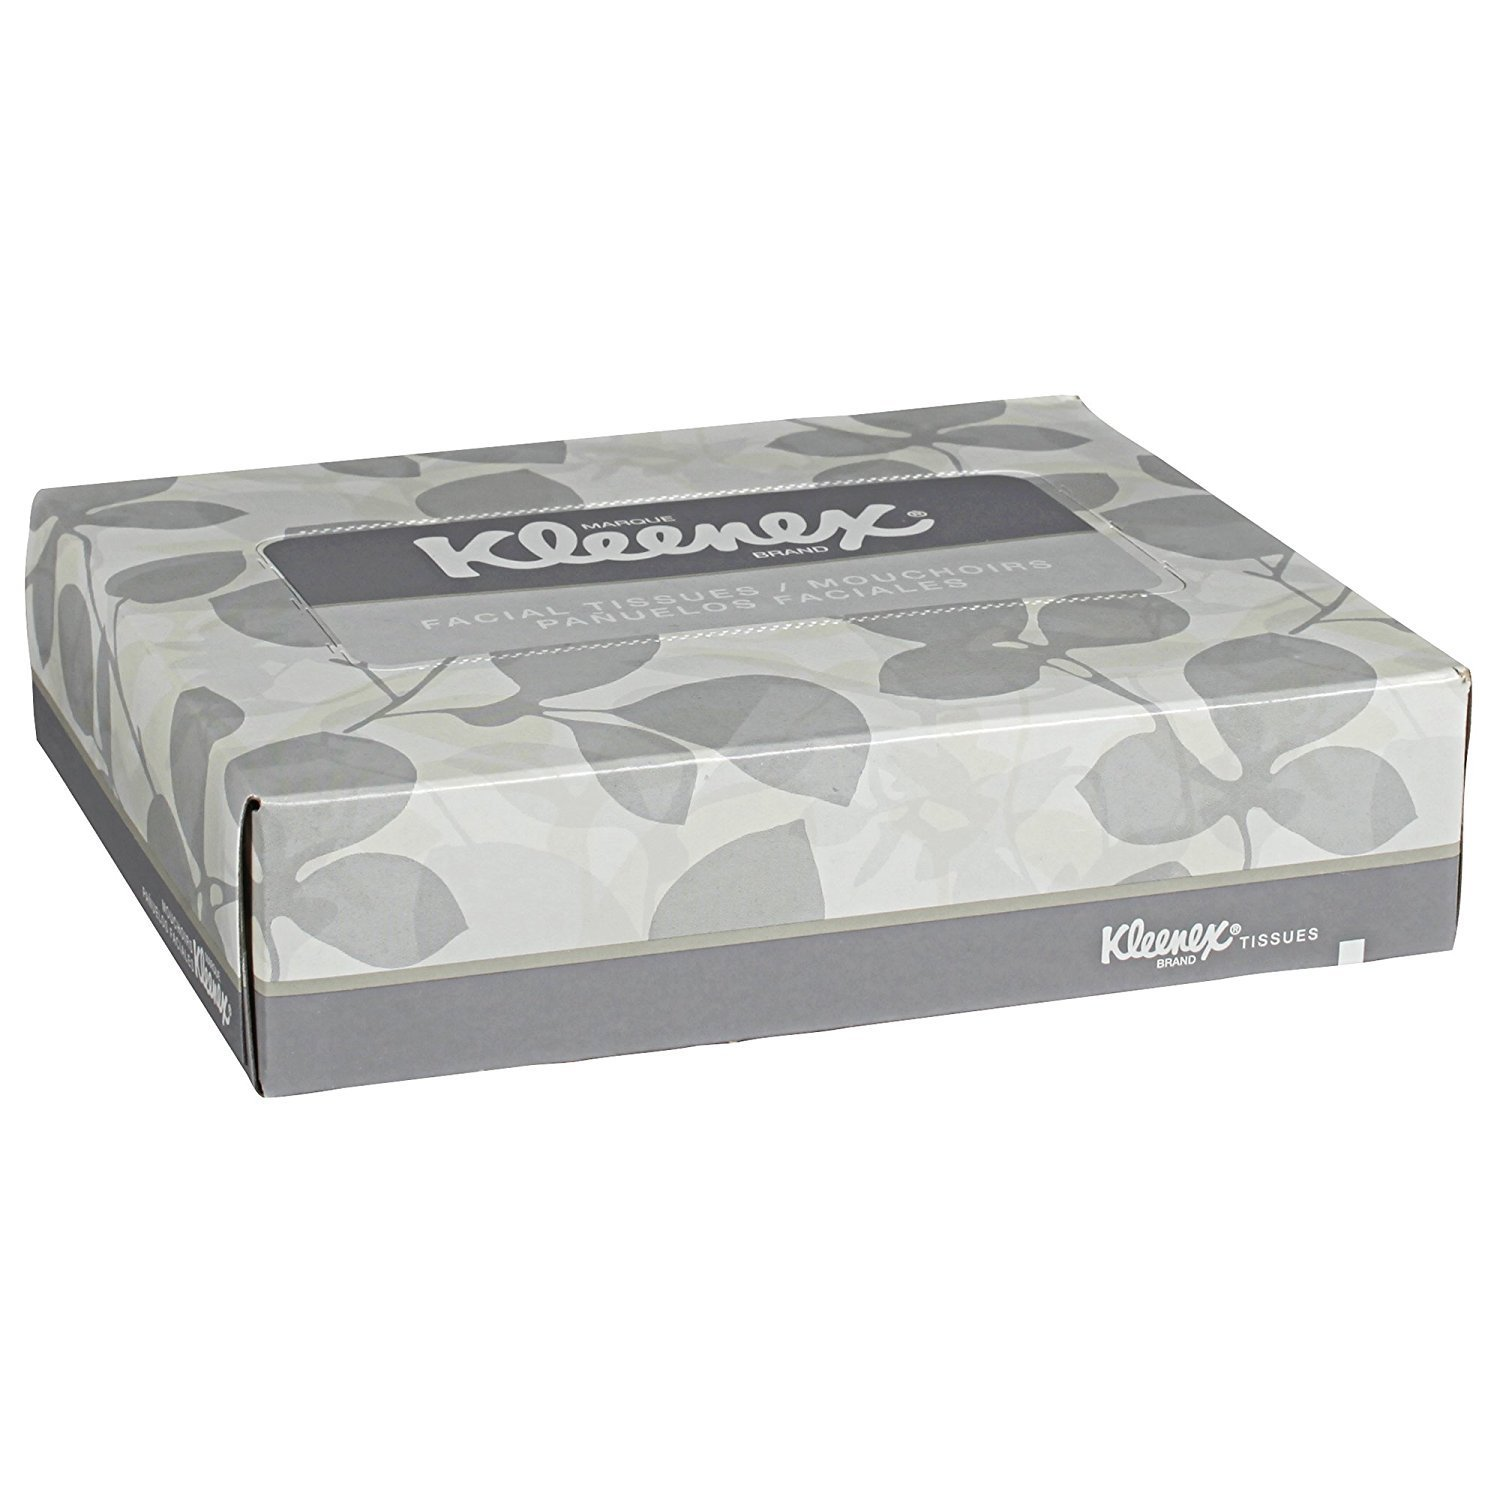 Think, that Customer contact plan for facial tissue kleenex